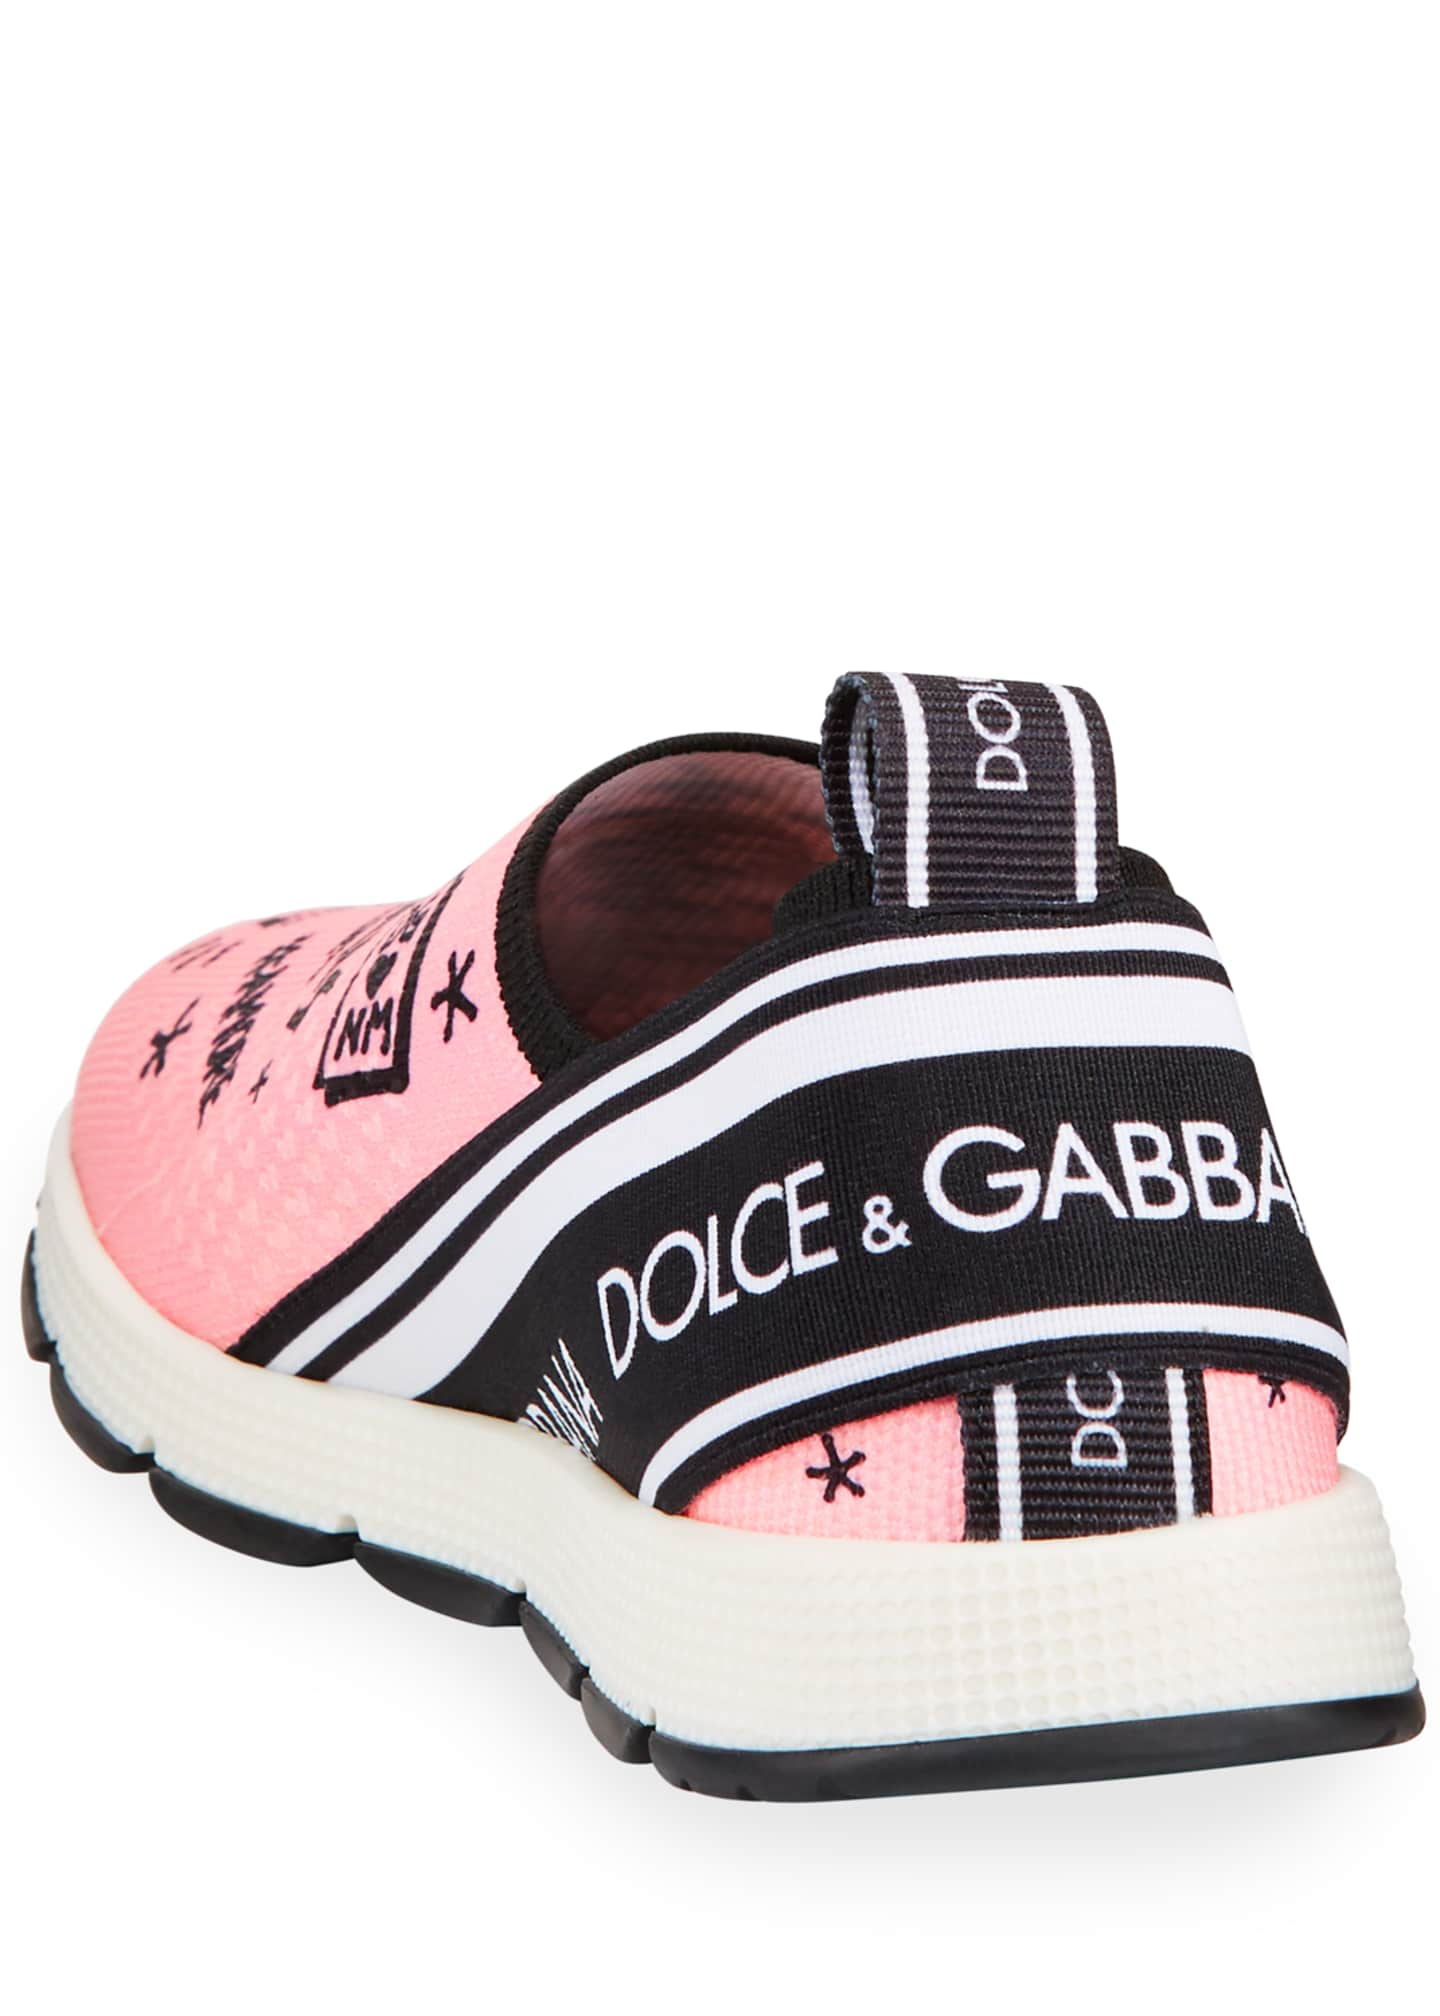 Image 3 of 3: DG + NM Maglina Slip-On Knit Logo-Patch Sneakers, Kids